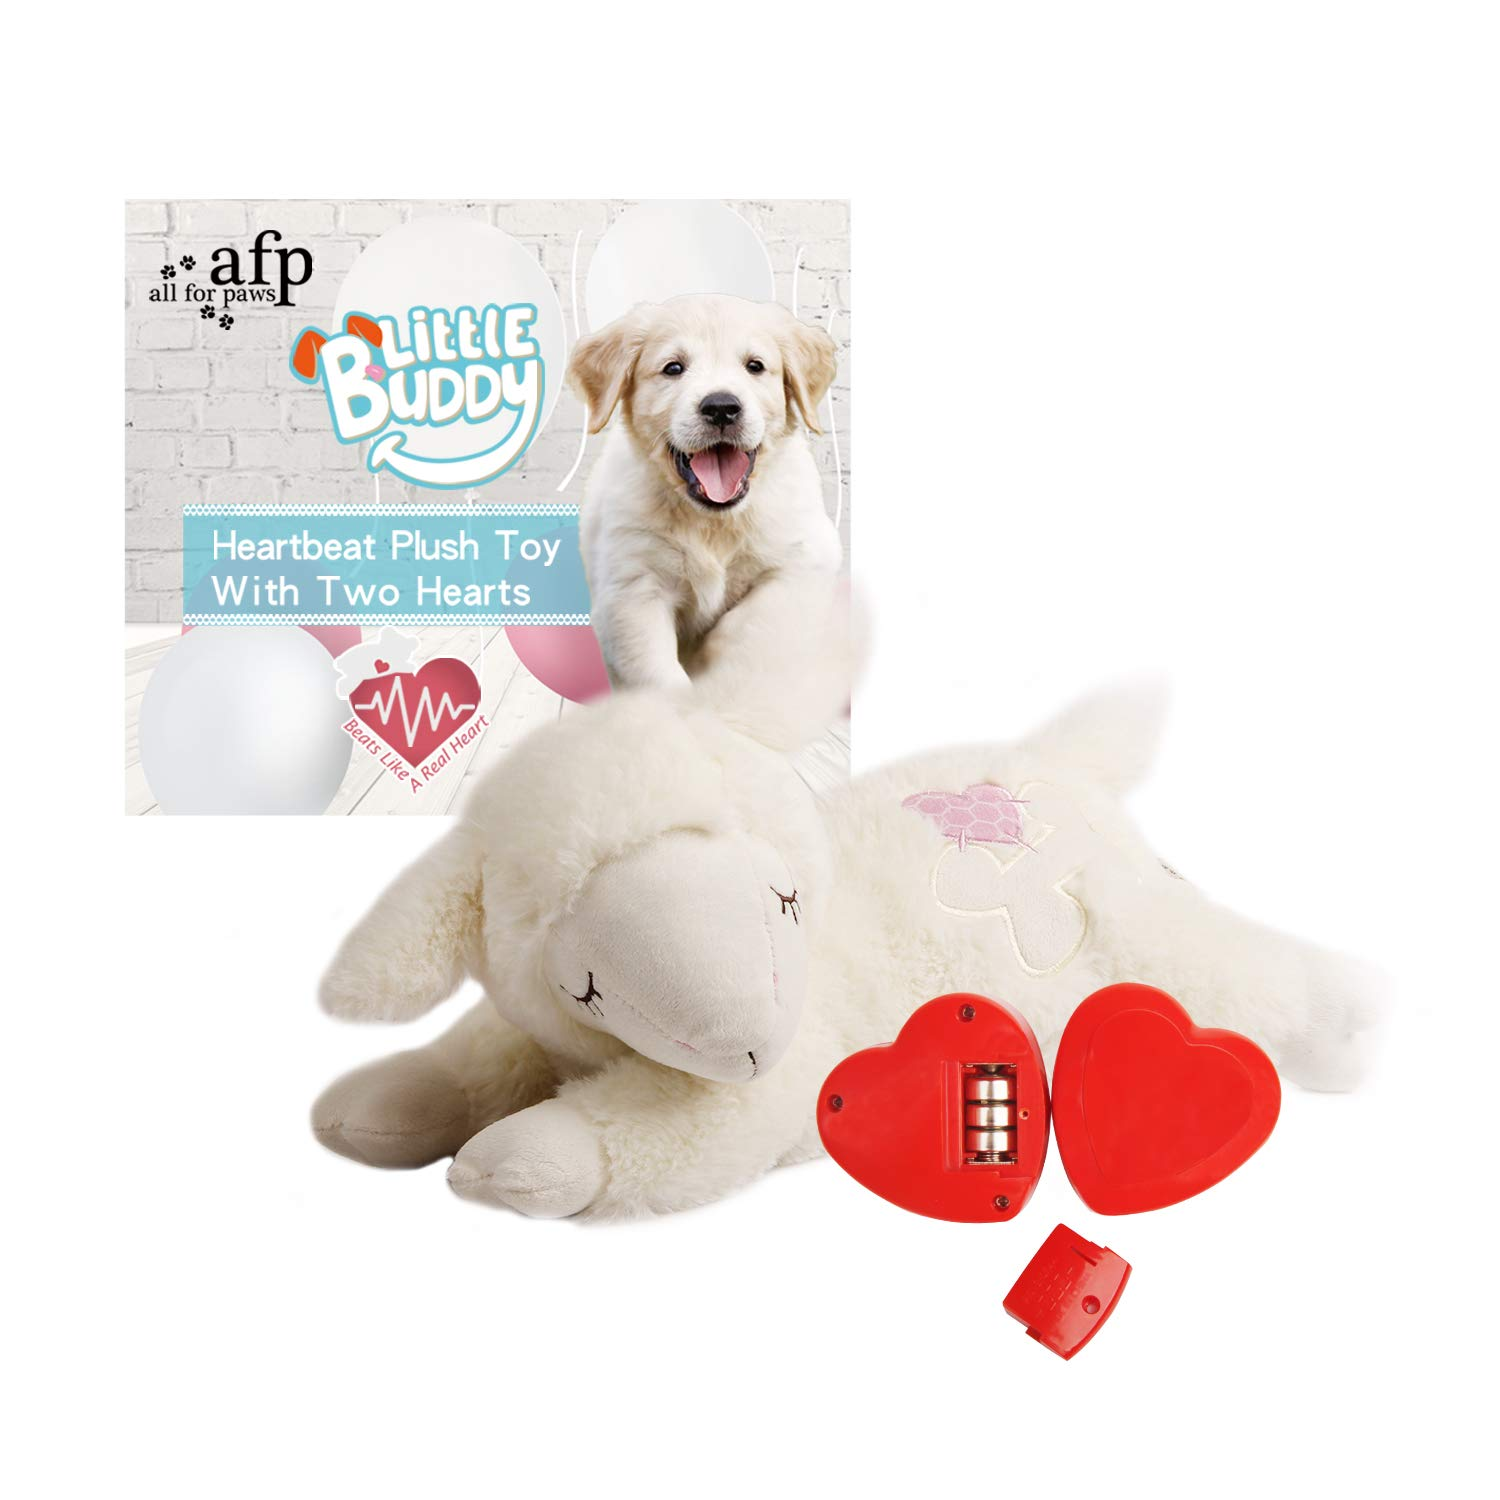 All For Paws AFP Snuggle Sheep Pet Behavioral Aid Toy Plush Toy(TWO HEARTBEAT)